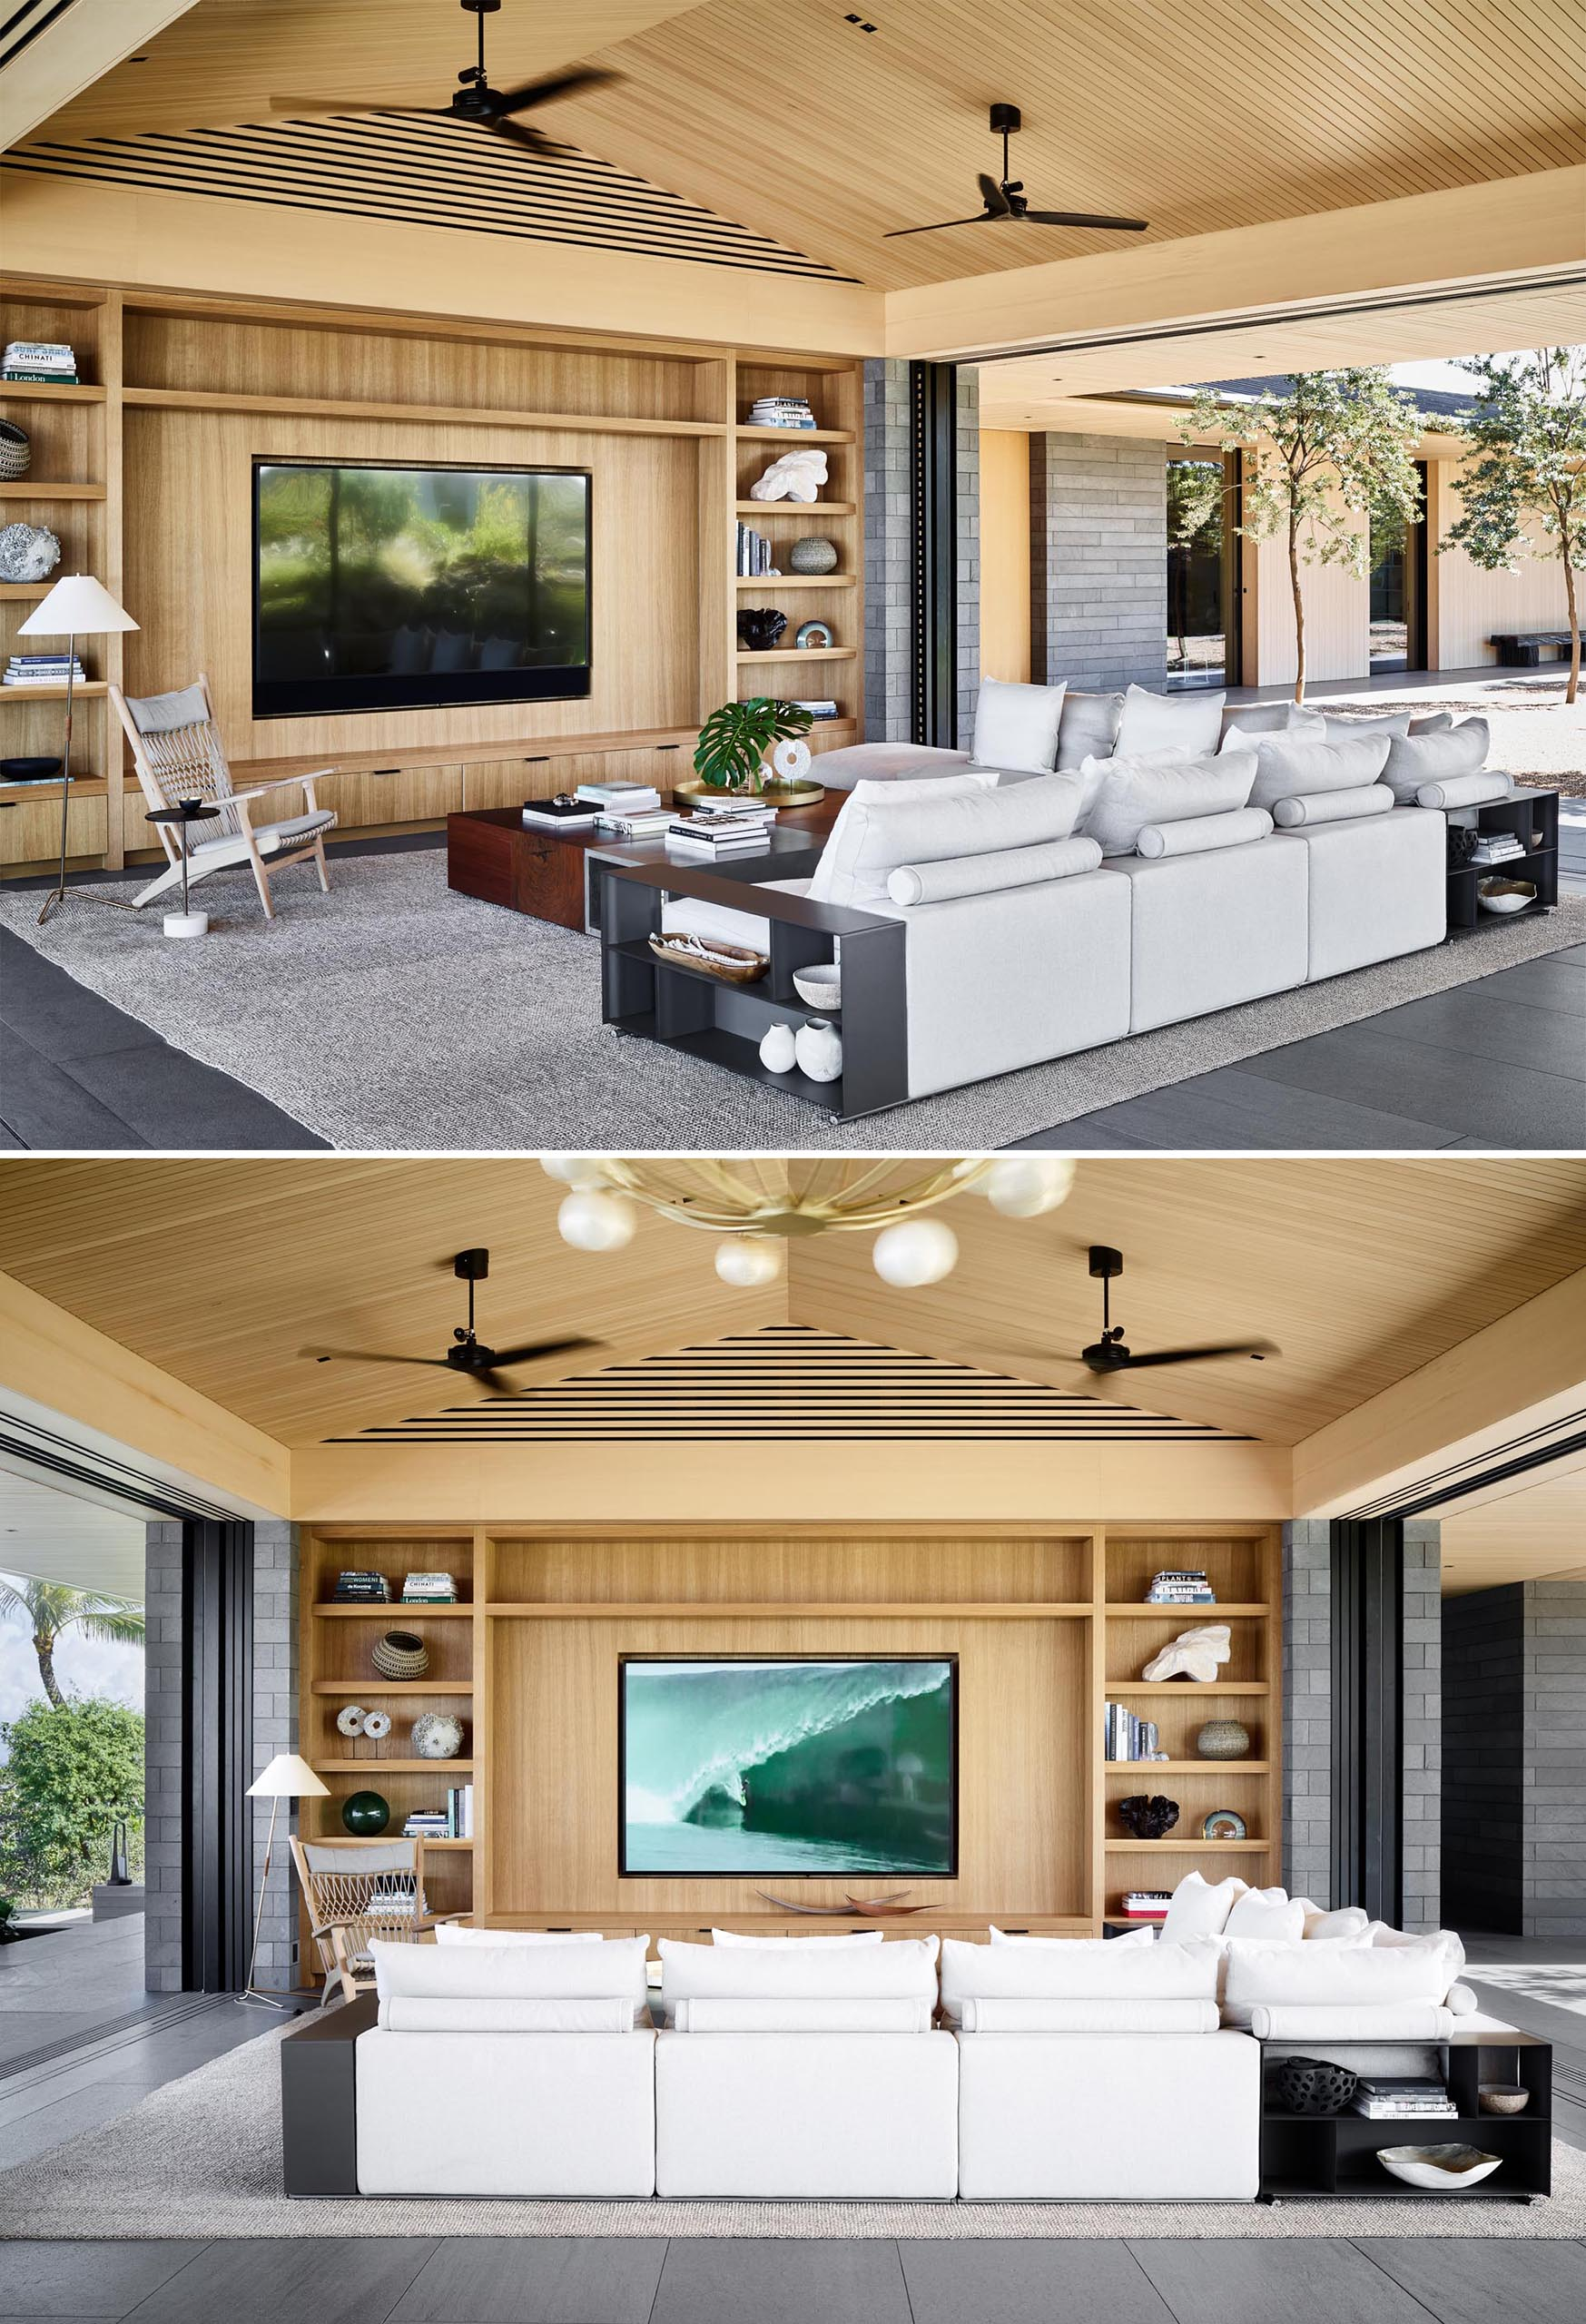 In this modern living room, a custom wood shelving unit takes up the entire wall, and light colored furniture like the sofa and accent chair, contrast the darker elements.